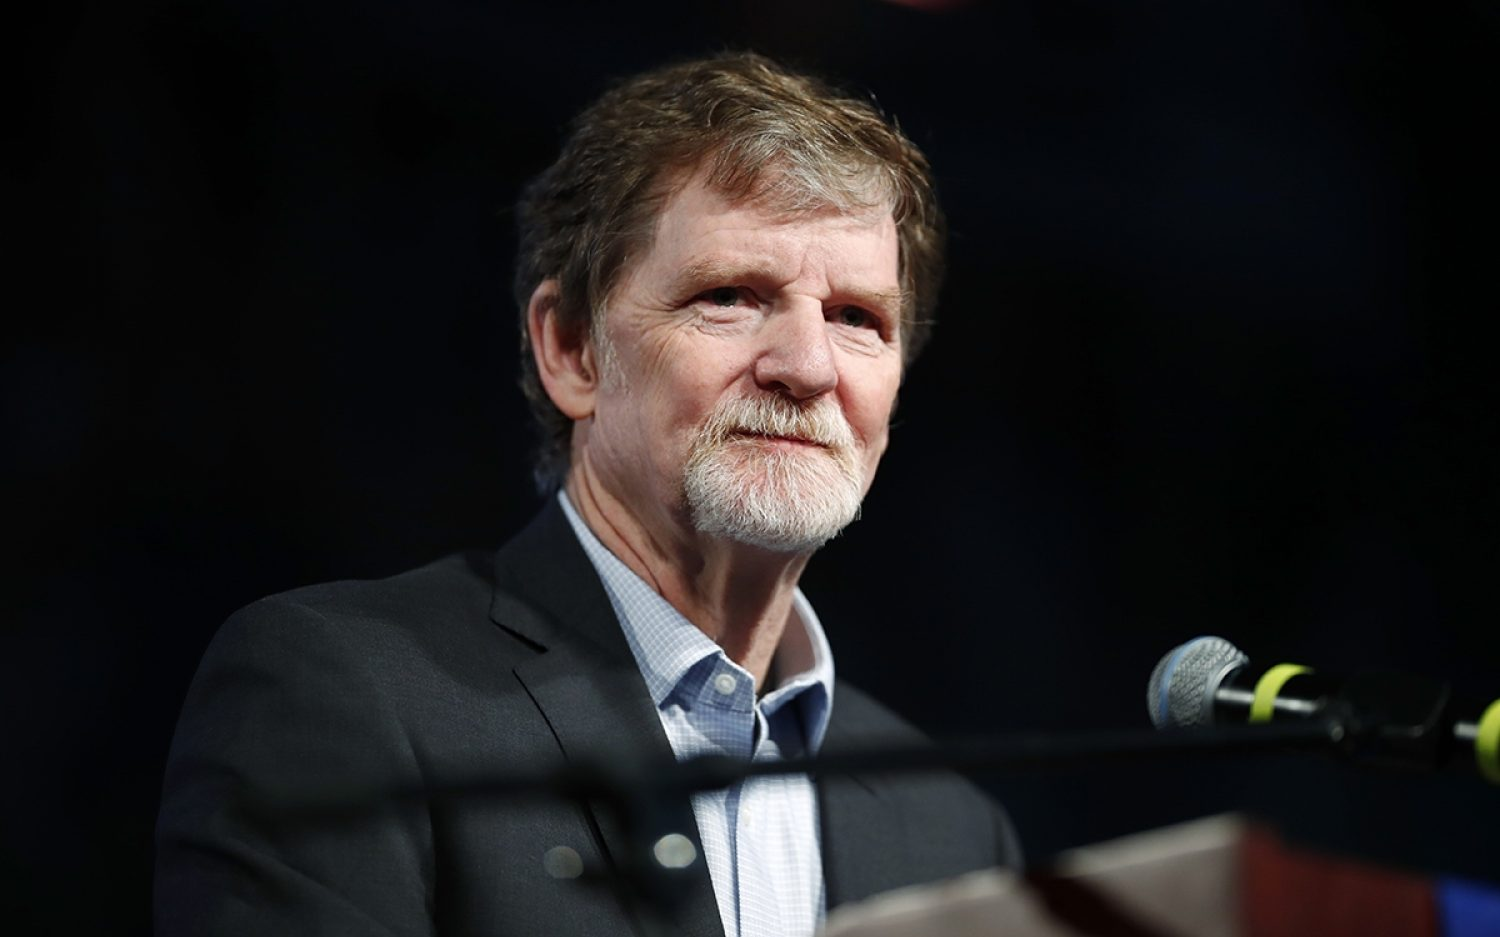 Another day in court for Jack Phillips